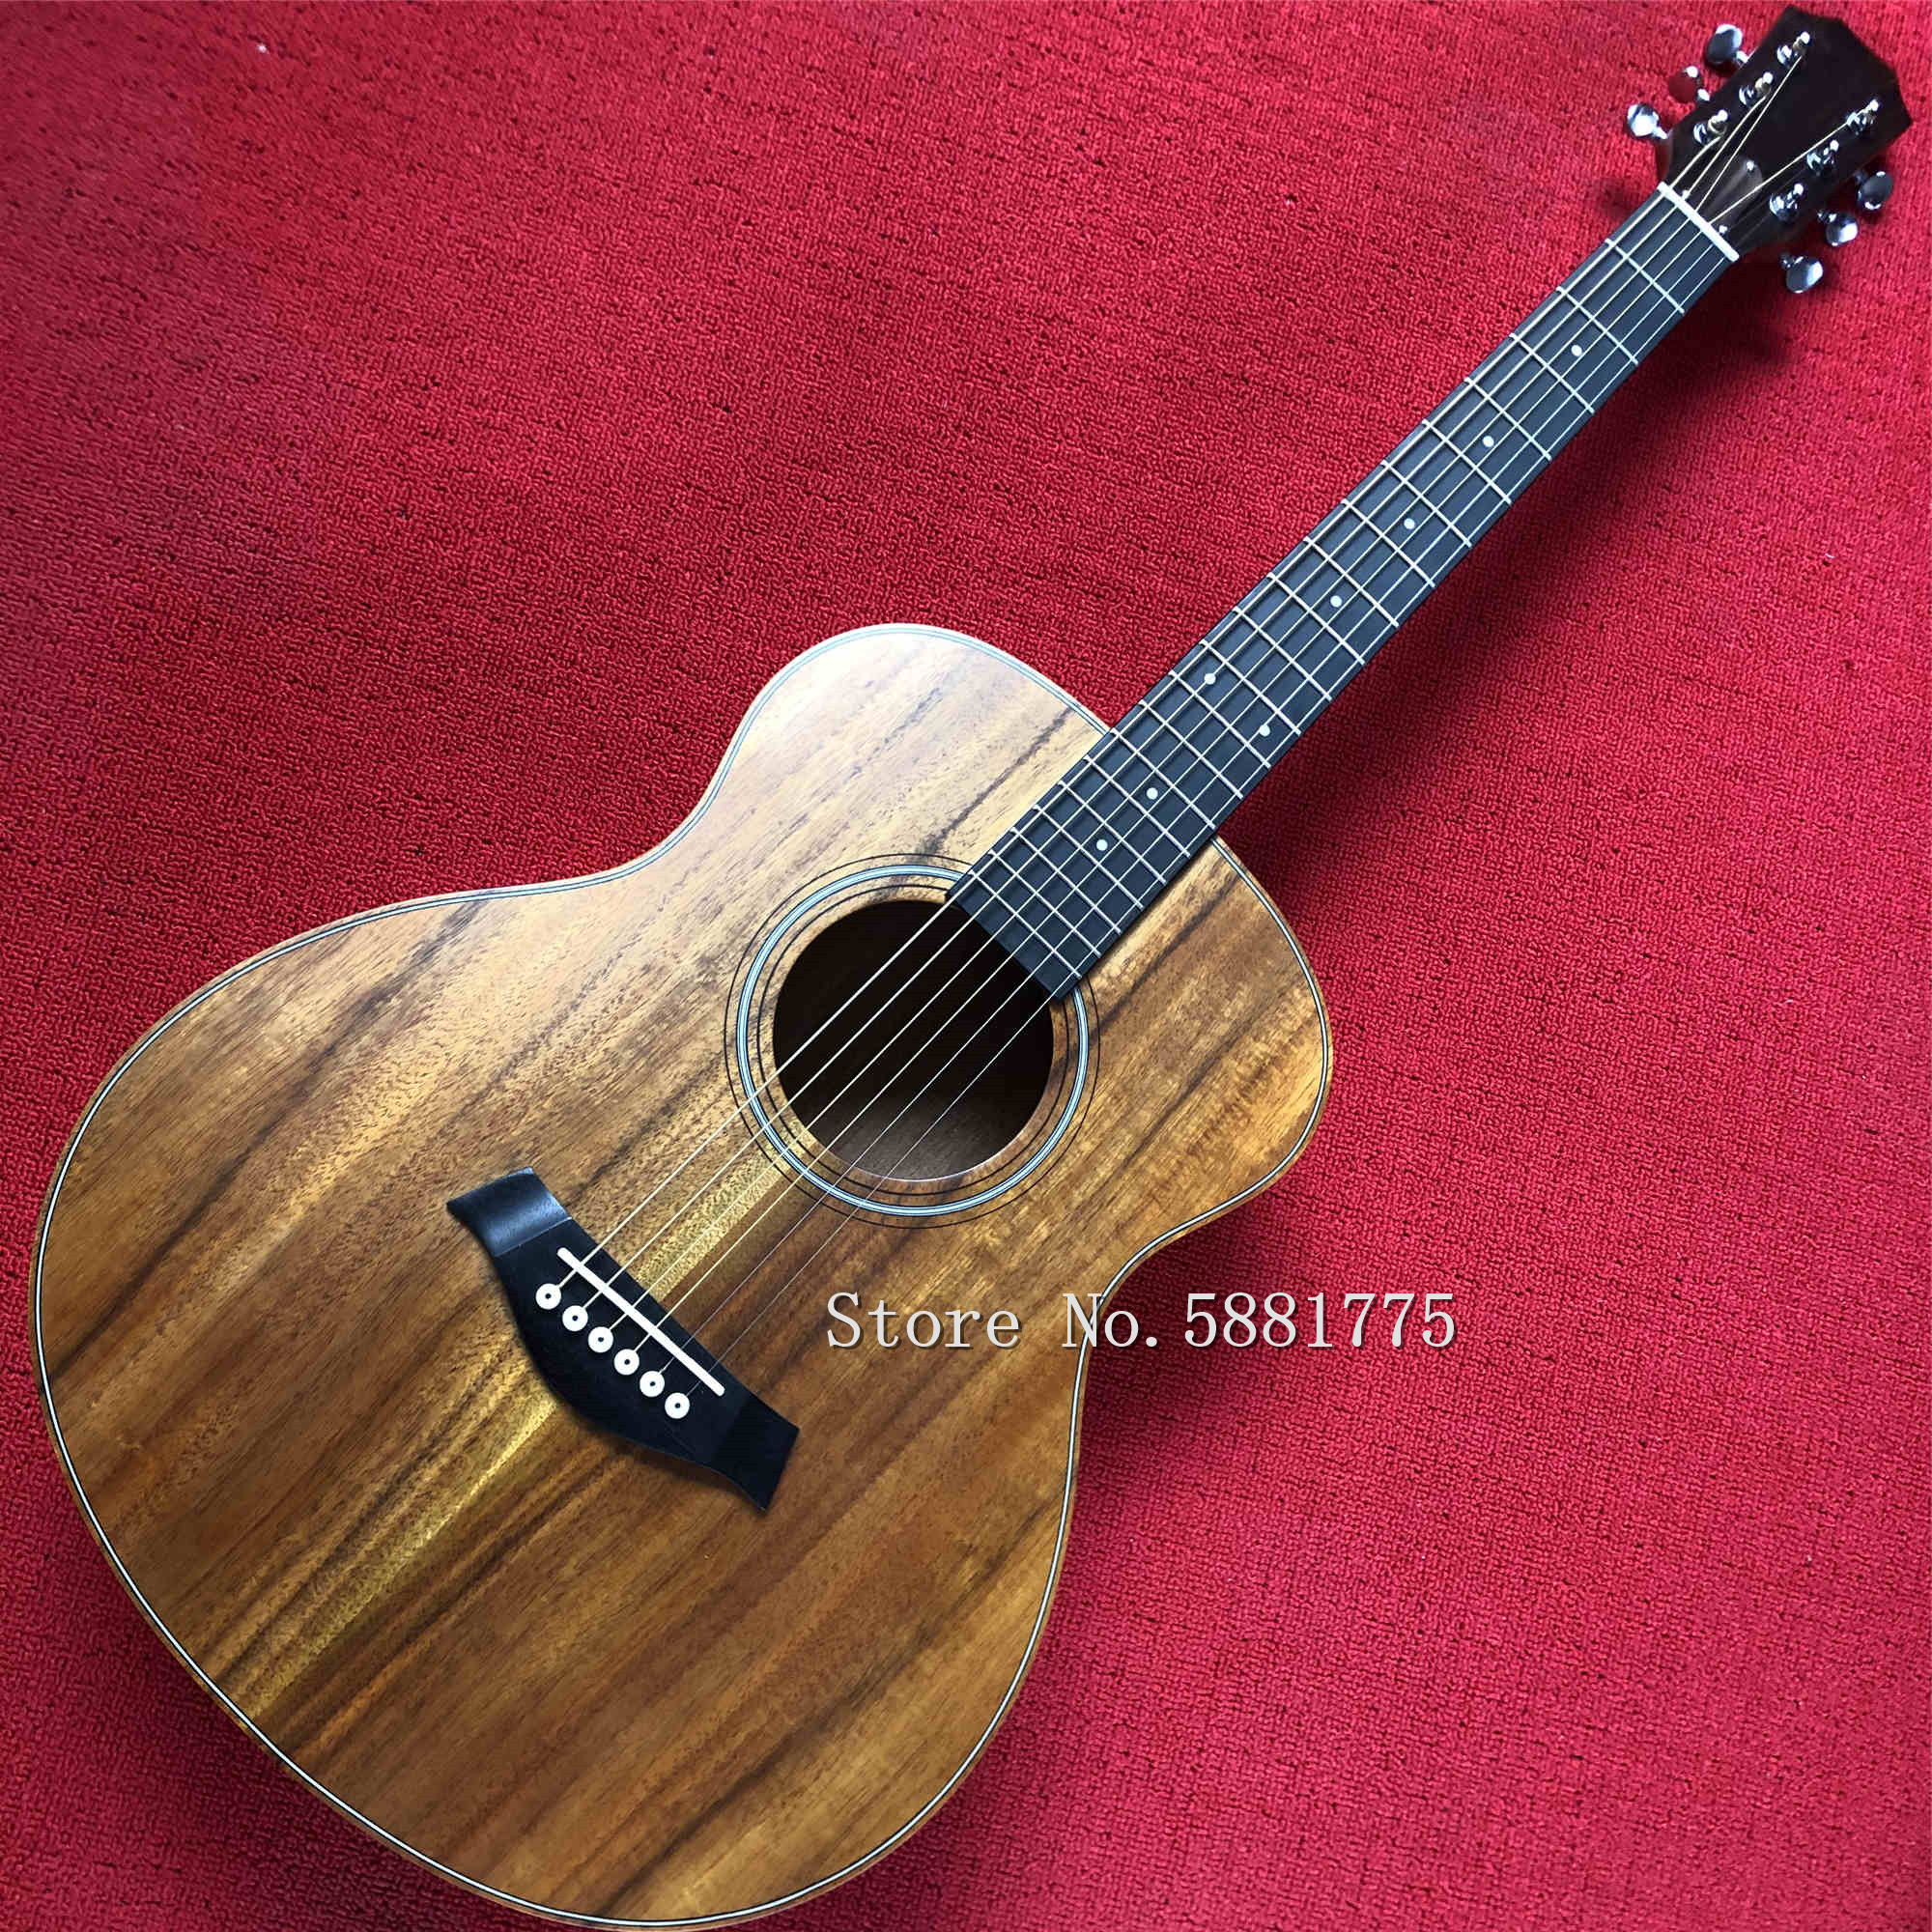 Factory new <font><b>36</b></font> inch KOA wooden acoustic <font><b>guitar</b></font>, ebony fingerboard, travel <font><b>guitar</b></font>, MINI guitarra image